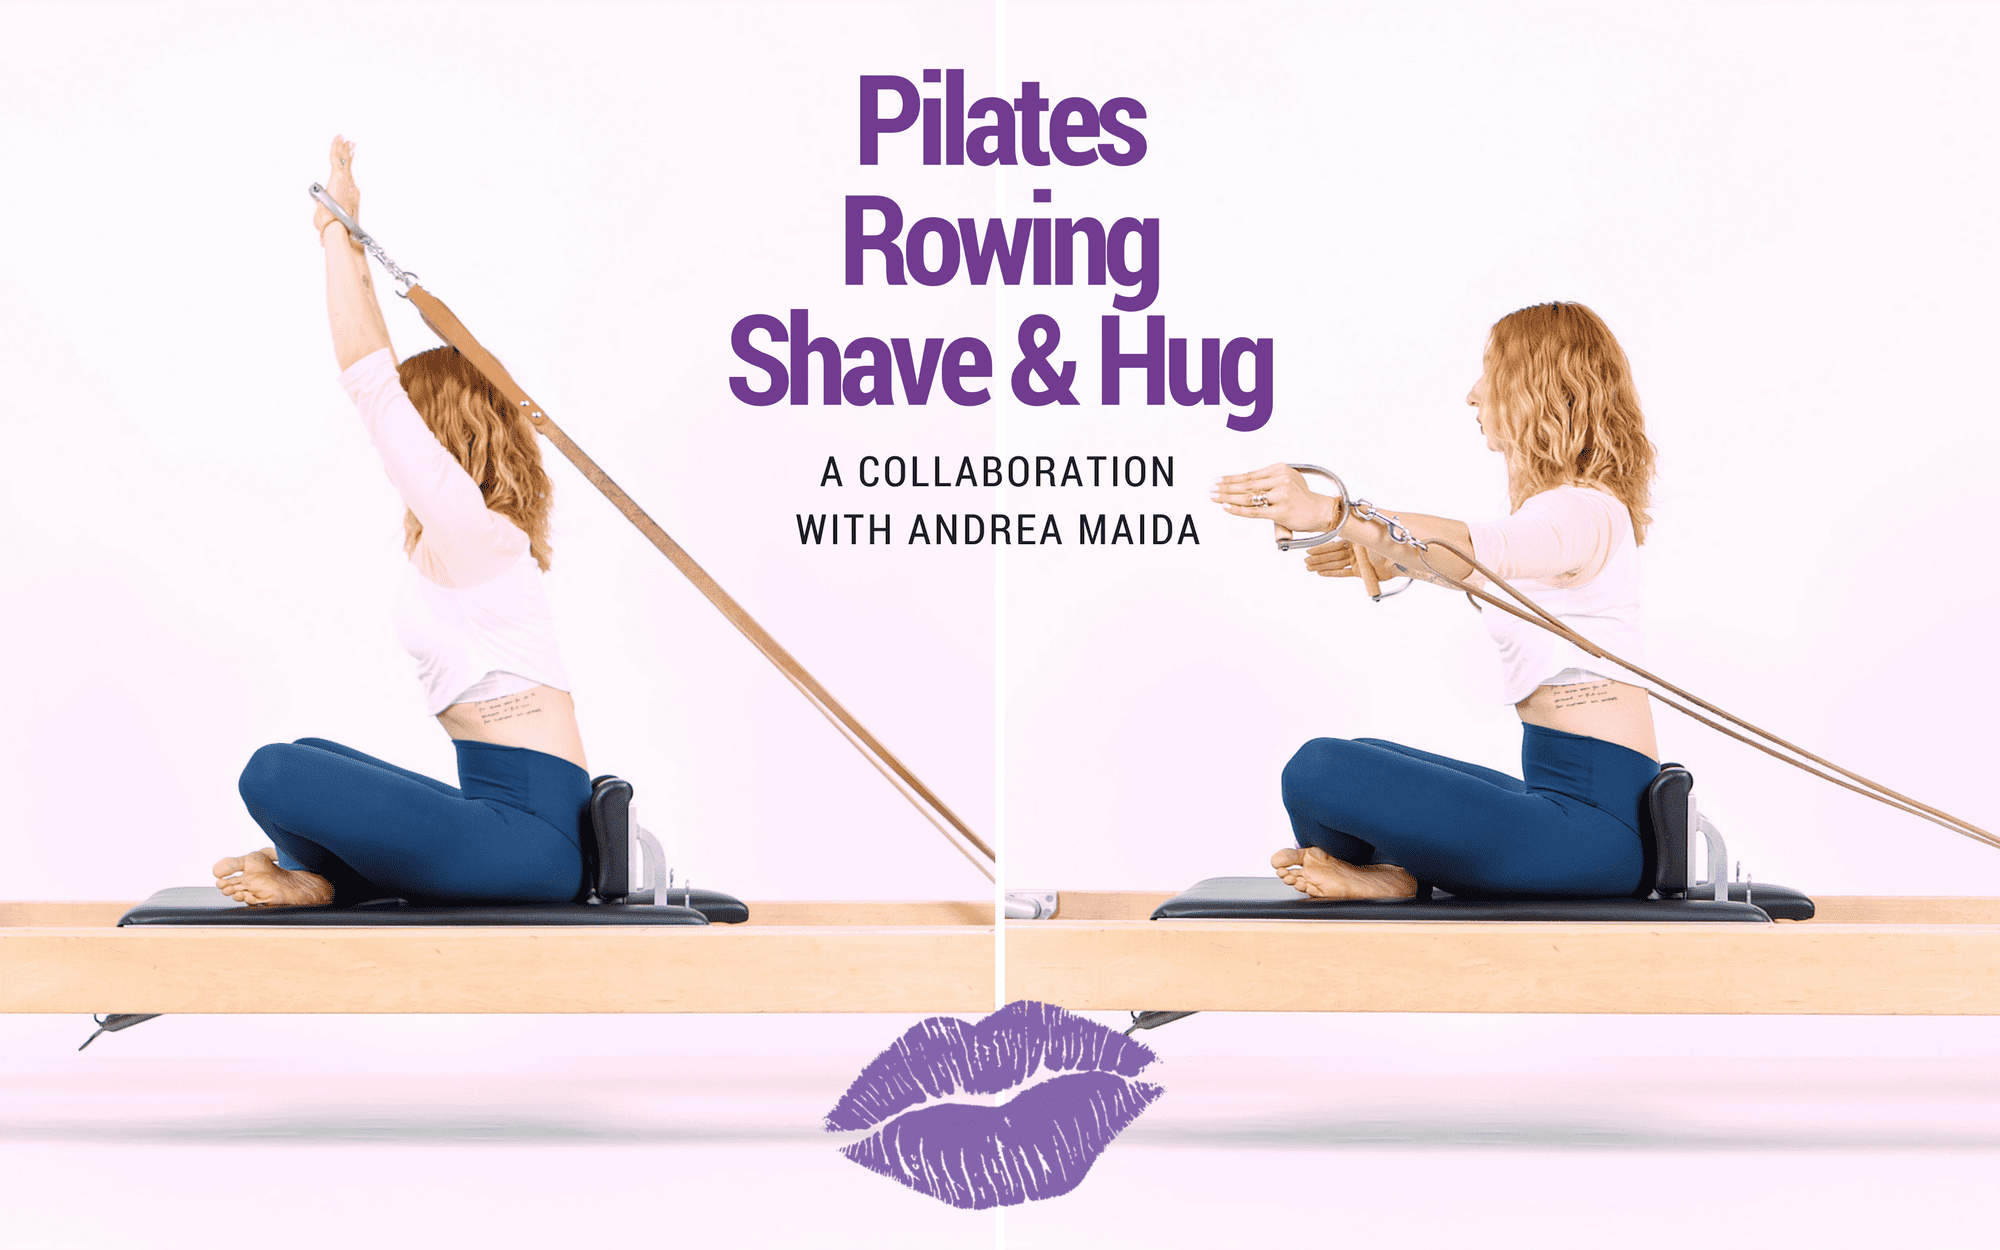 Lesley Logan Pilates Rowing Shave Hug Youtube